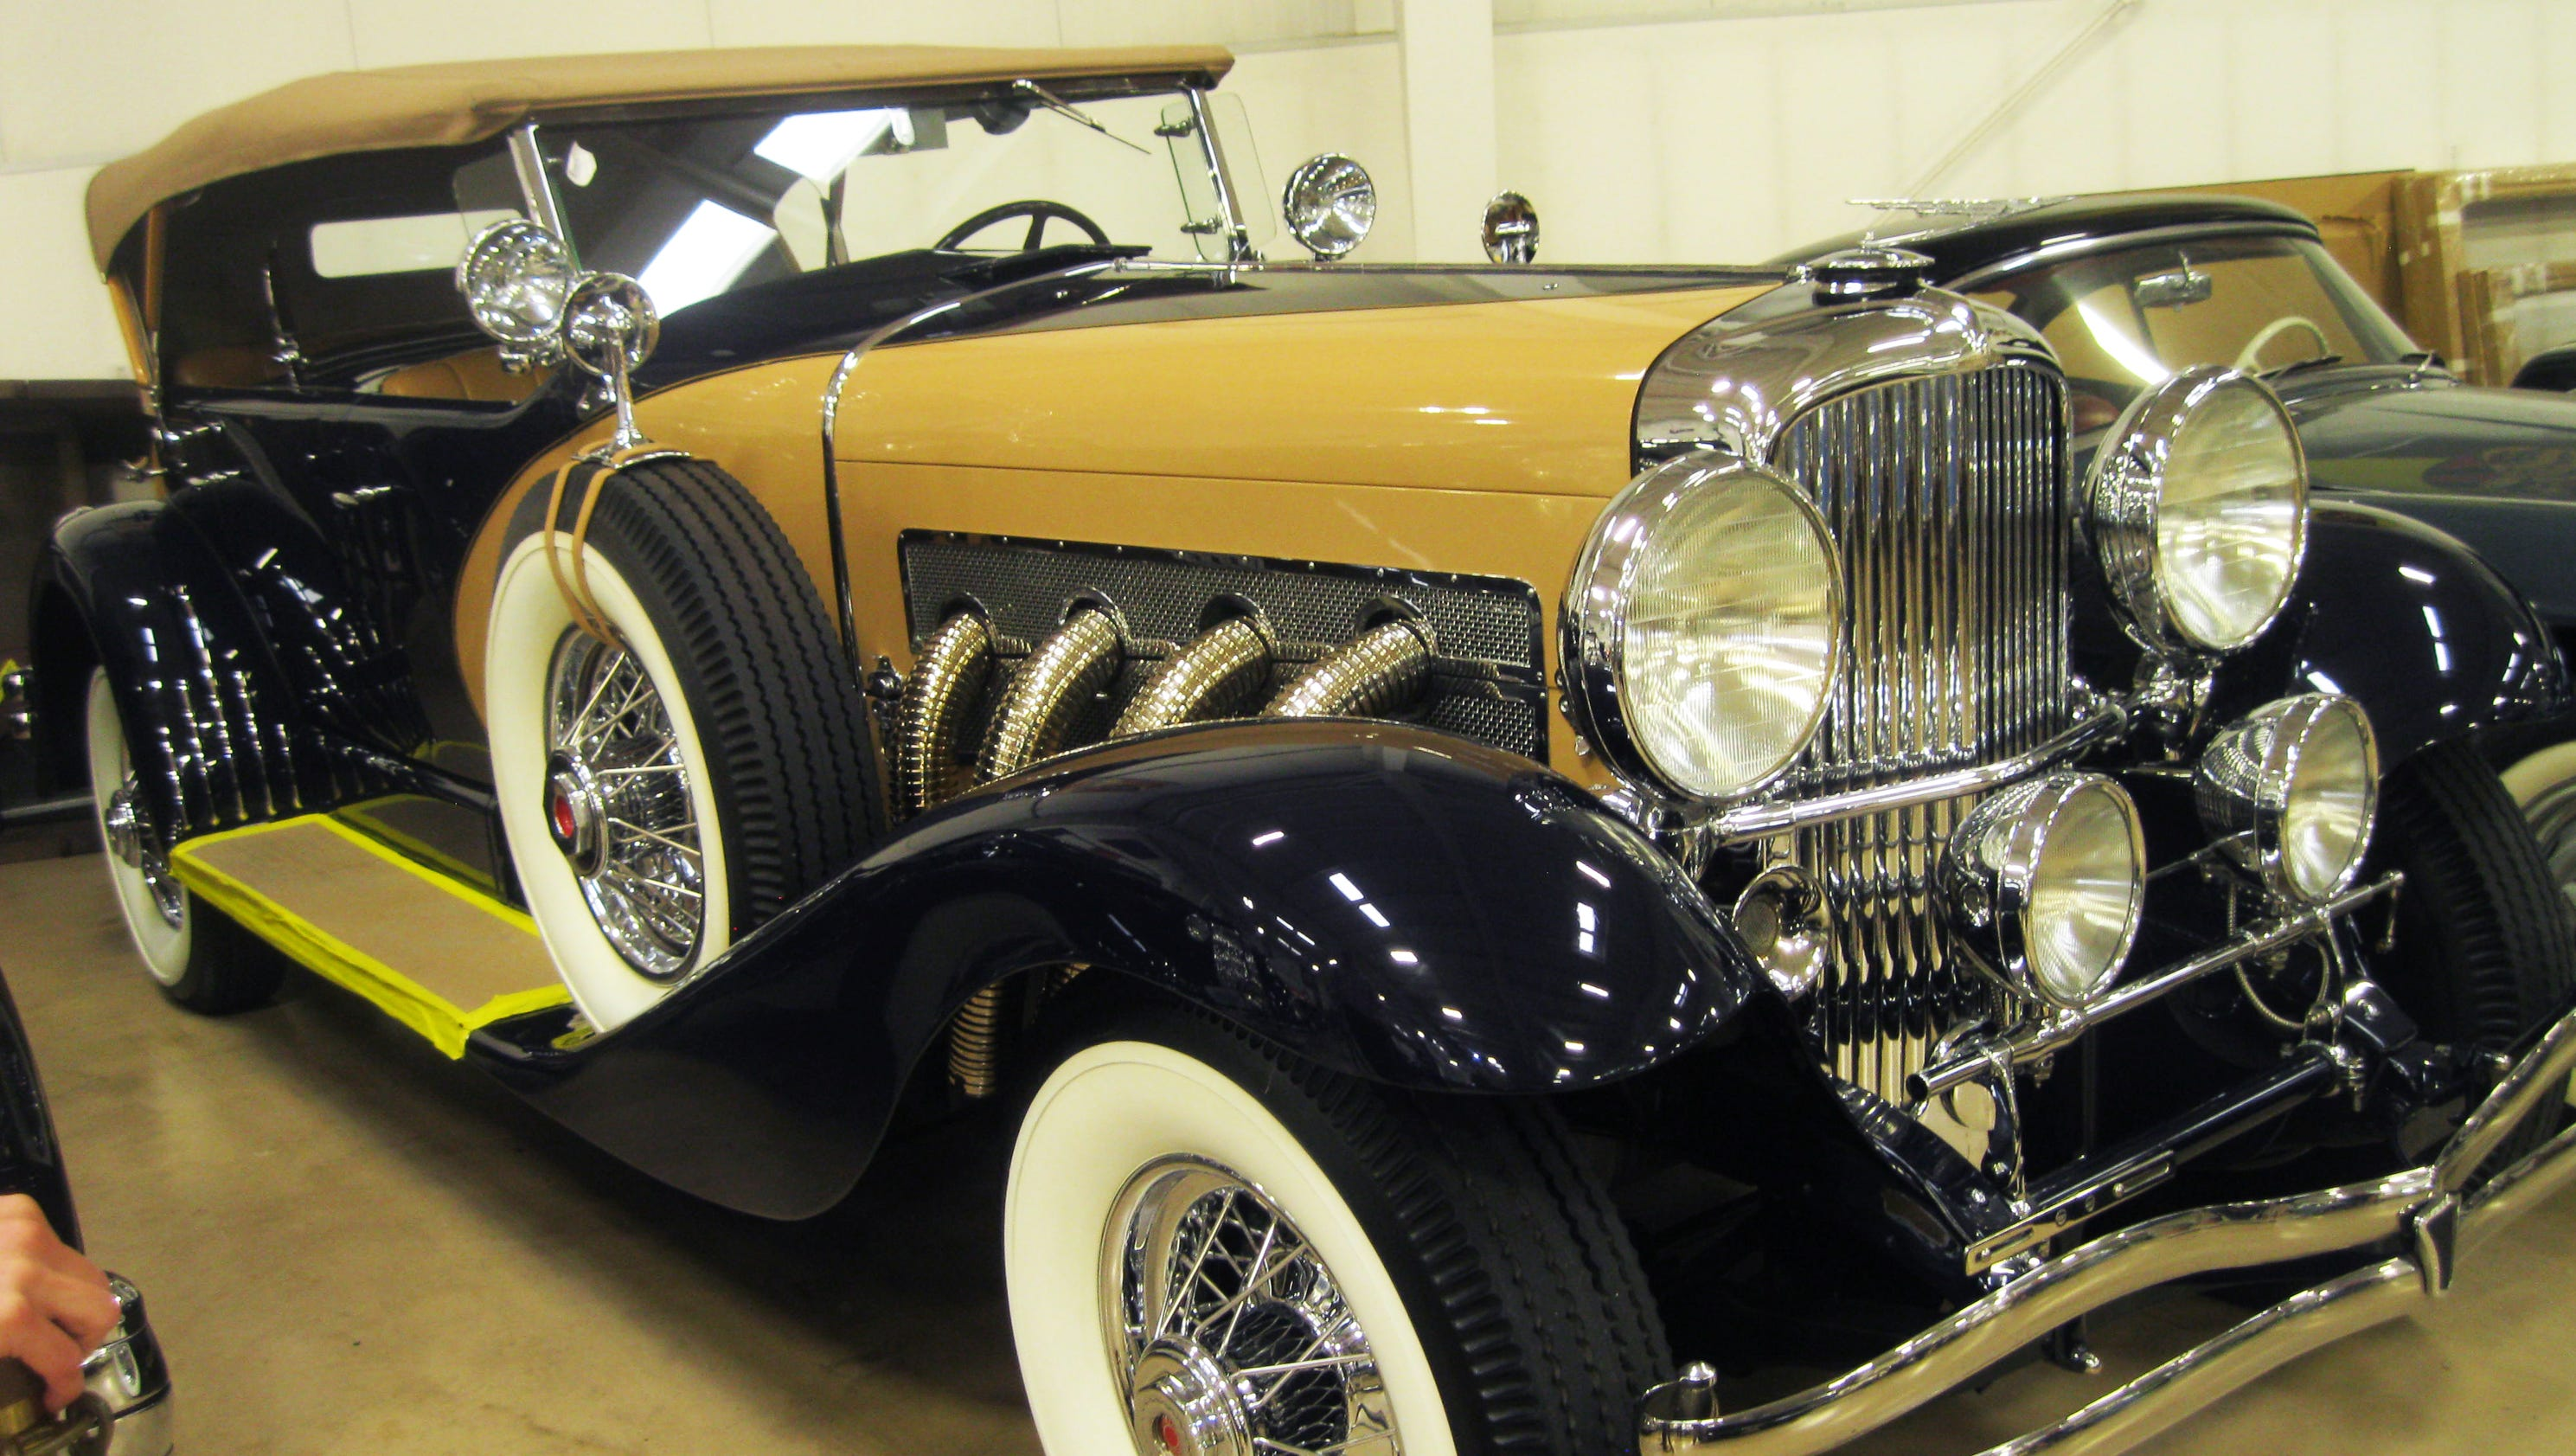 Preview rm sotheby s motor city classic car auction Motor city car auction